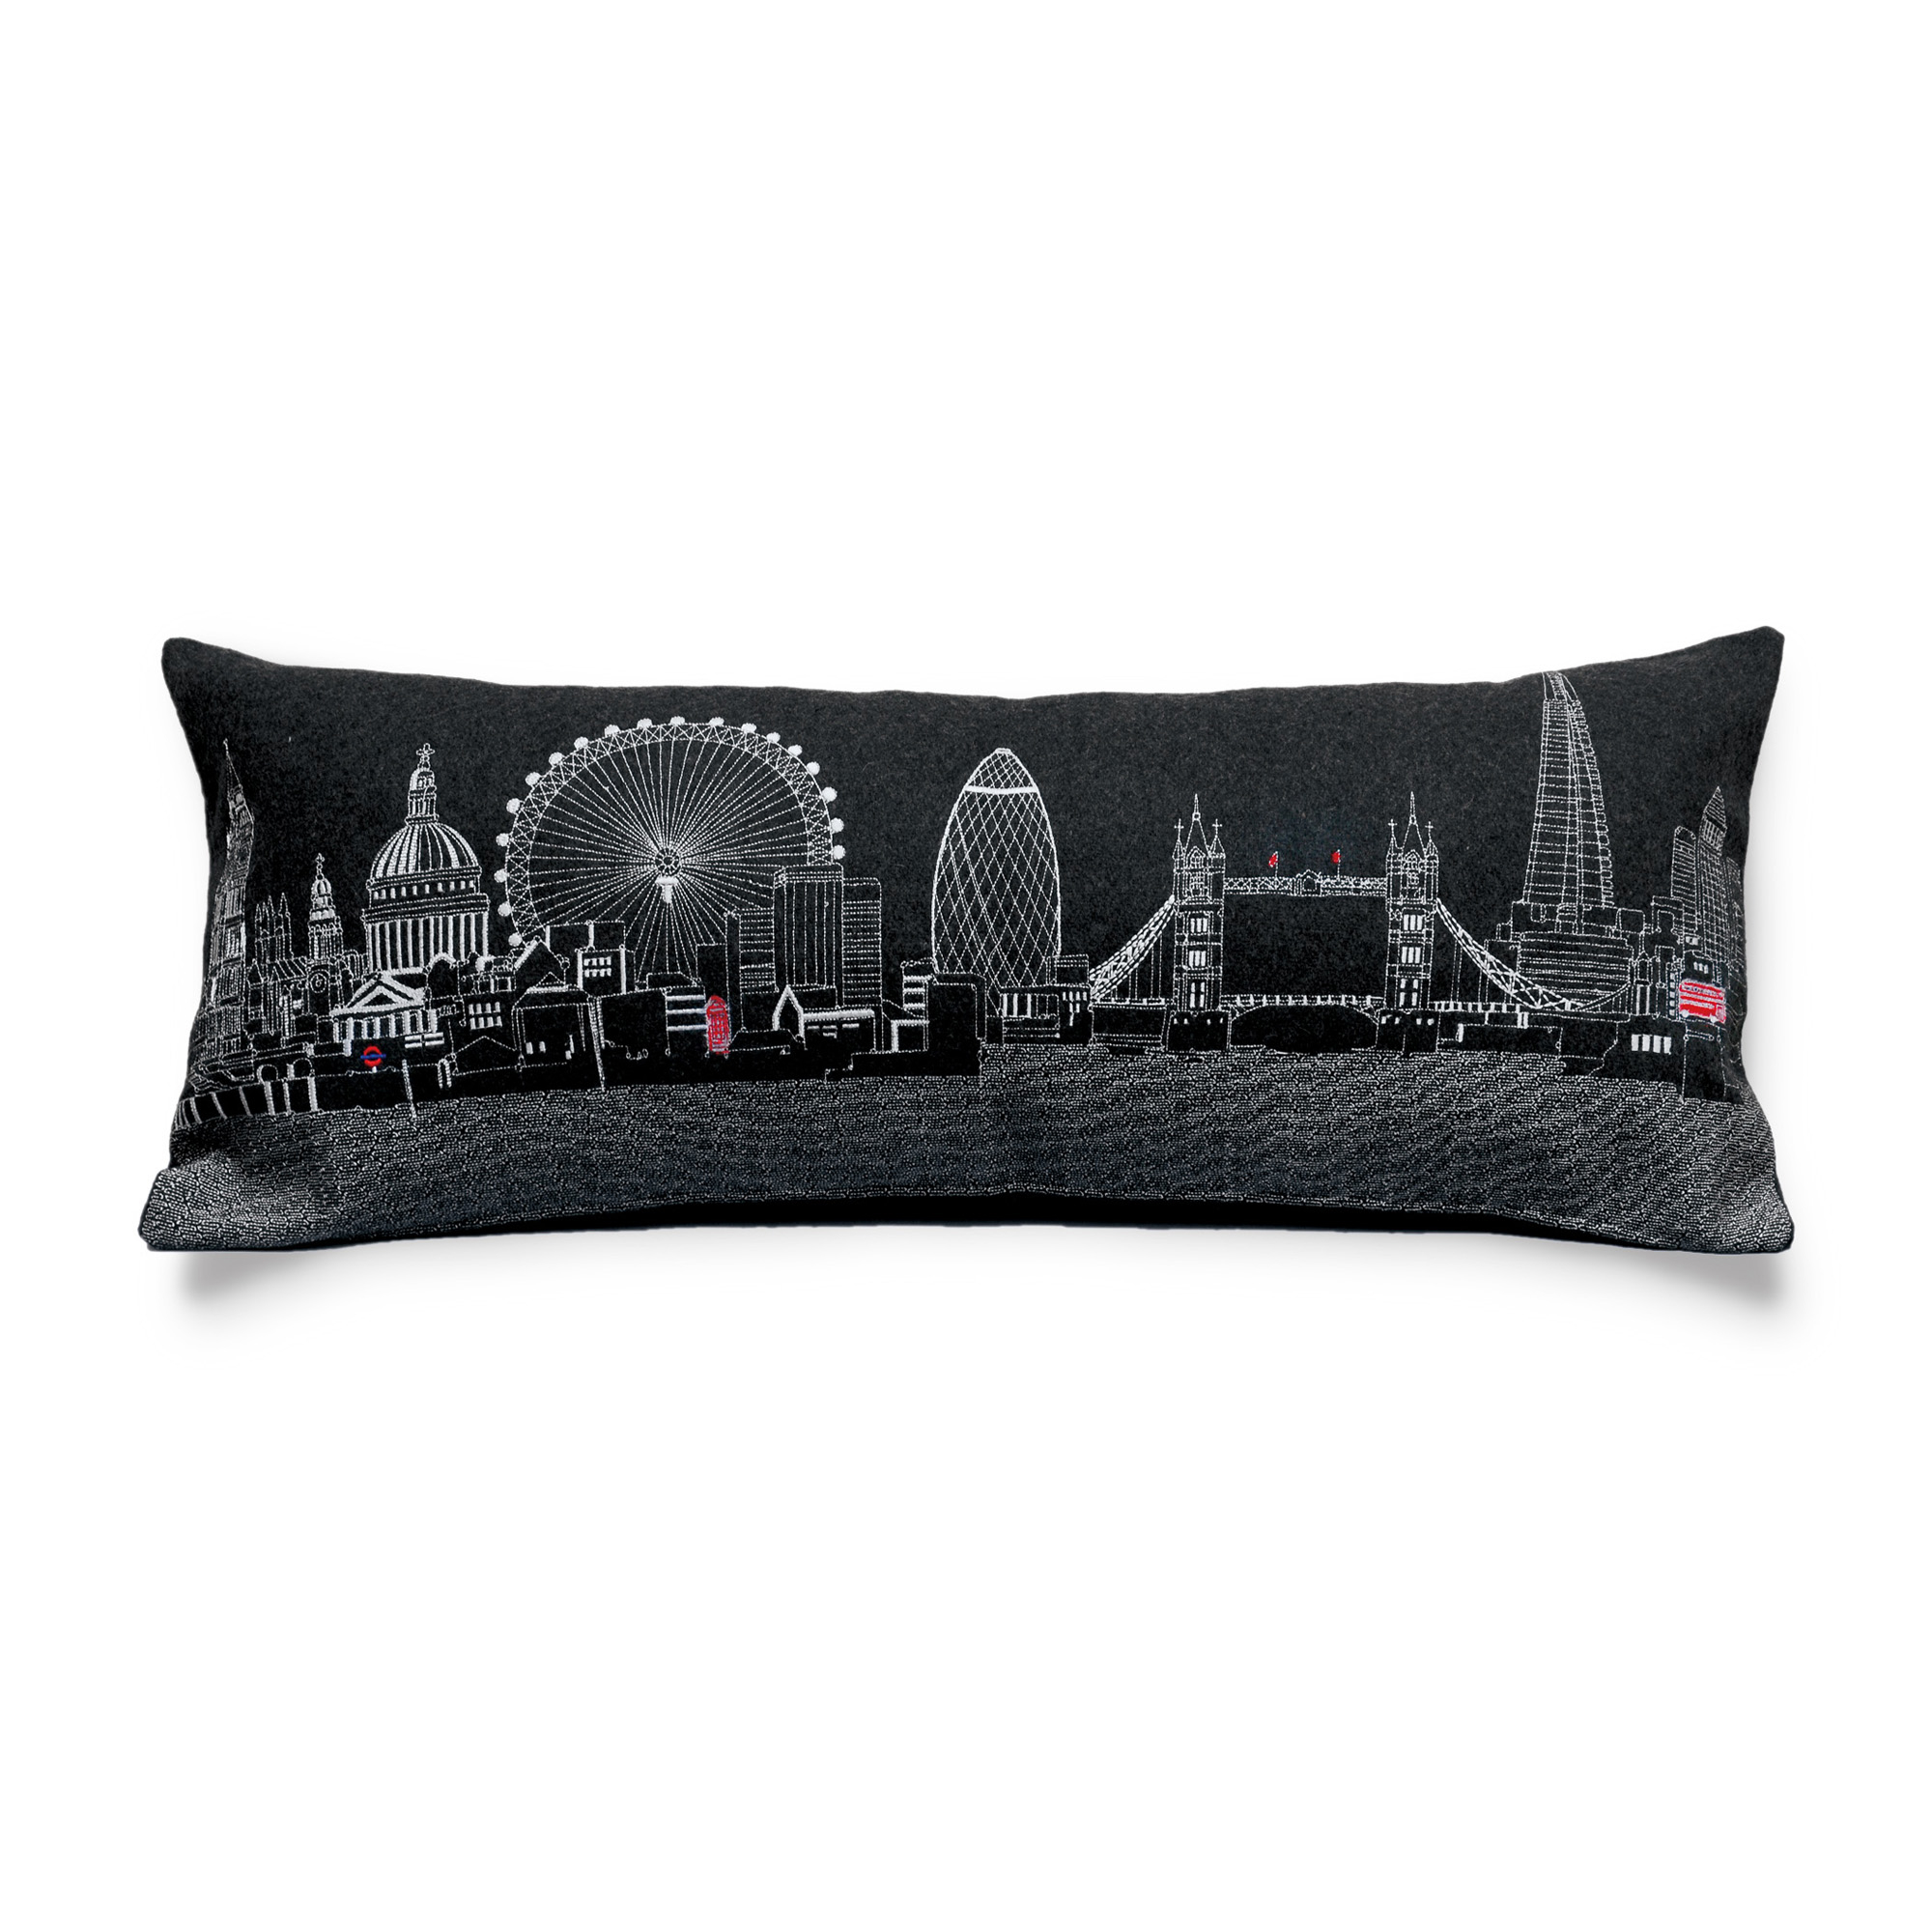 City Skyline Pillow, London